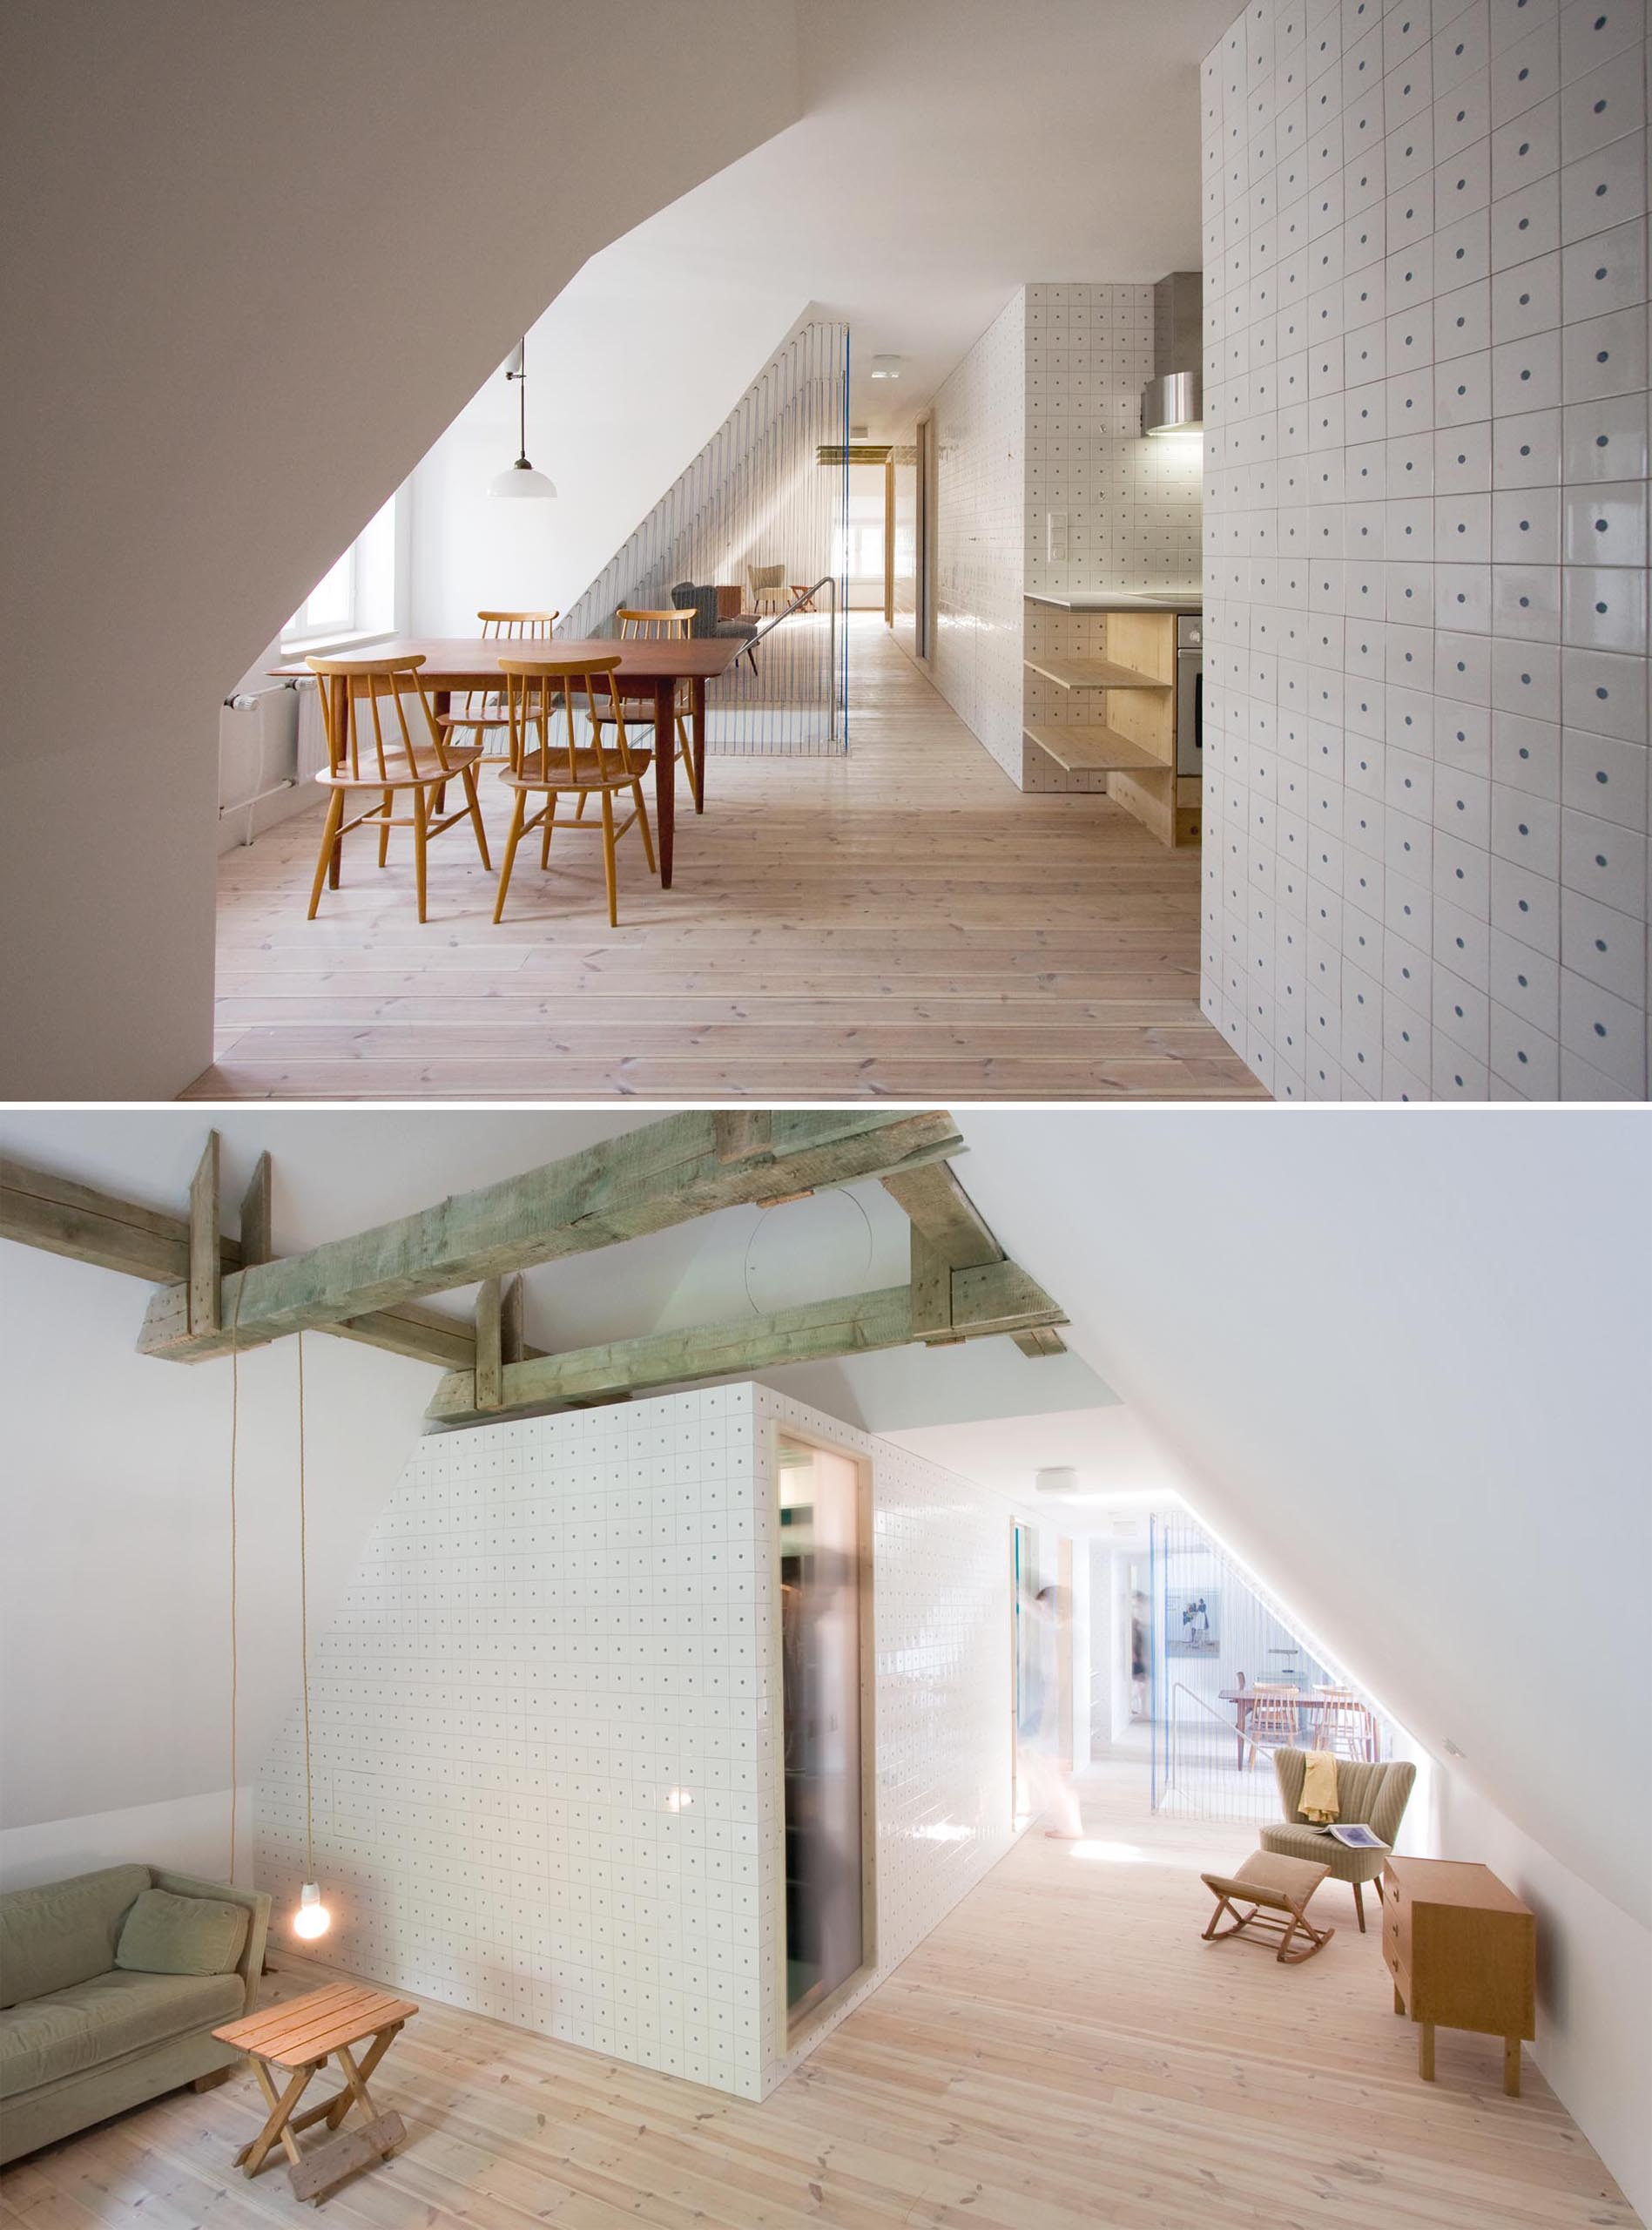 A bright attic with tiled walls, a dining area, a kitchen, and blue rope safety barrier for the stairs.